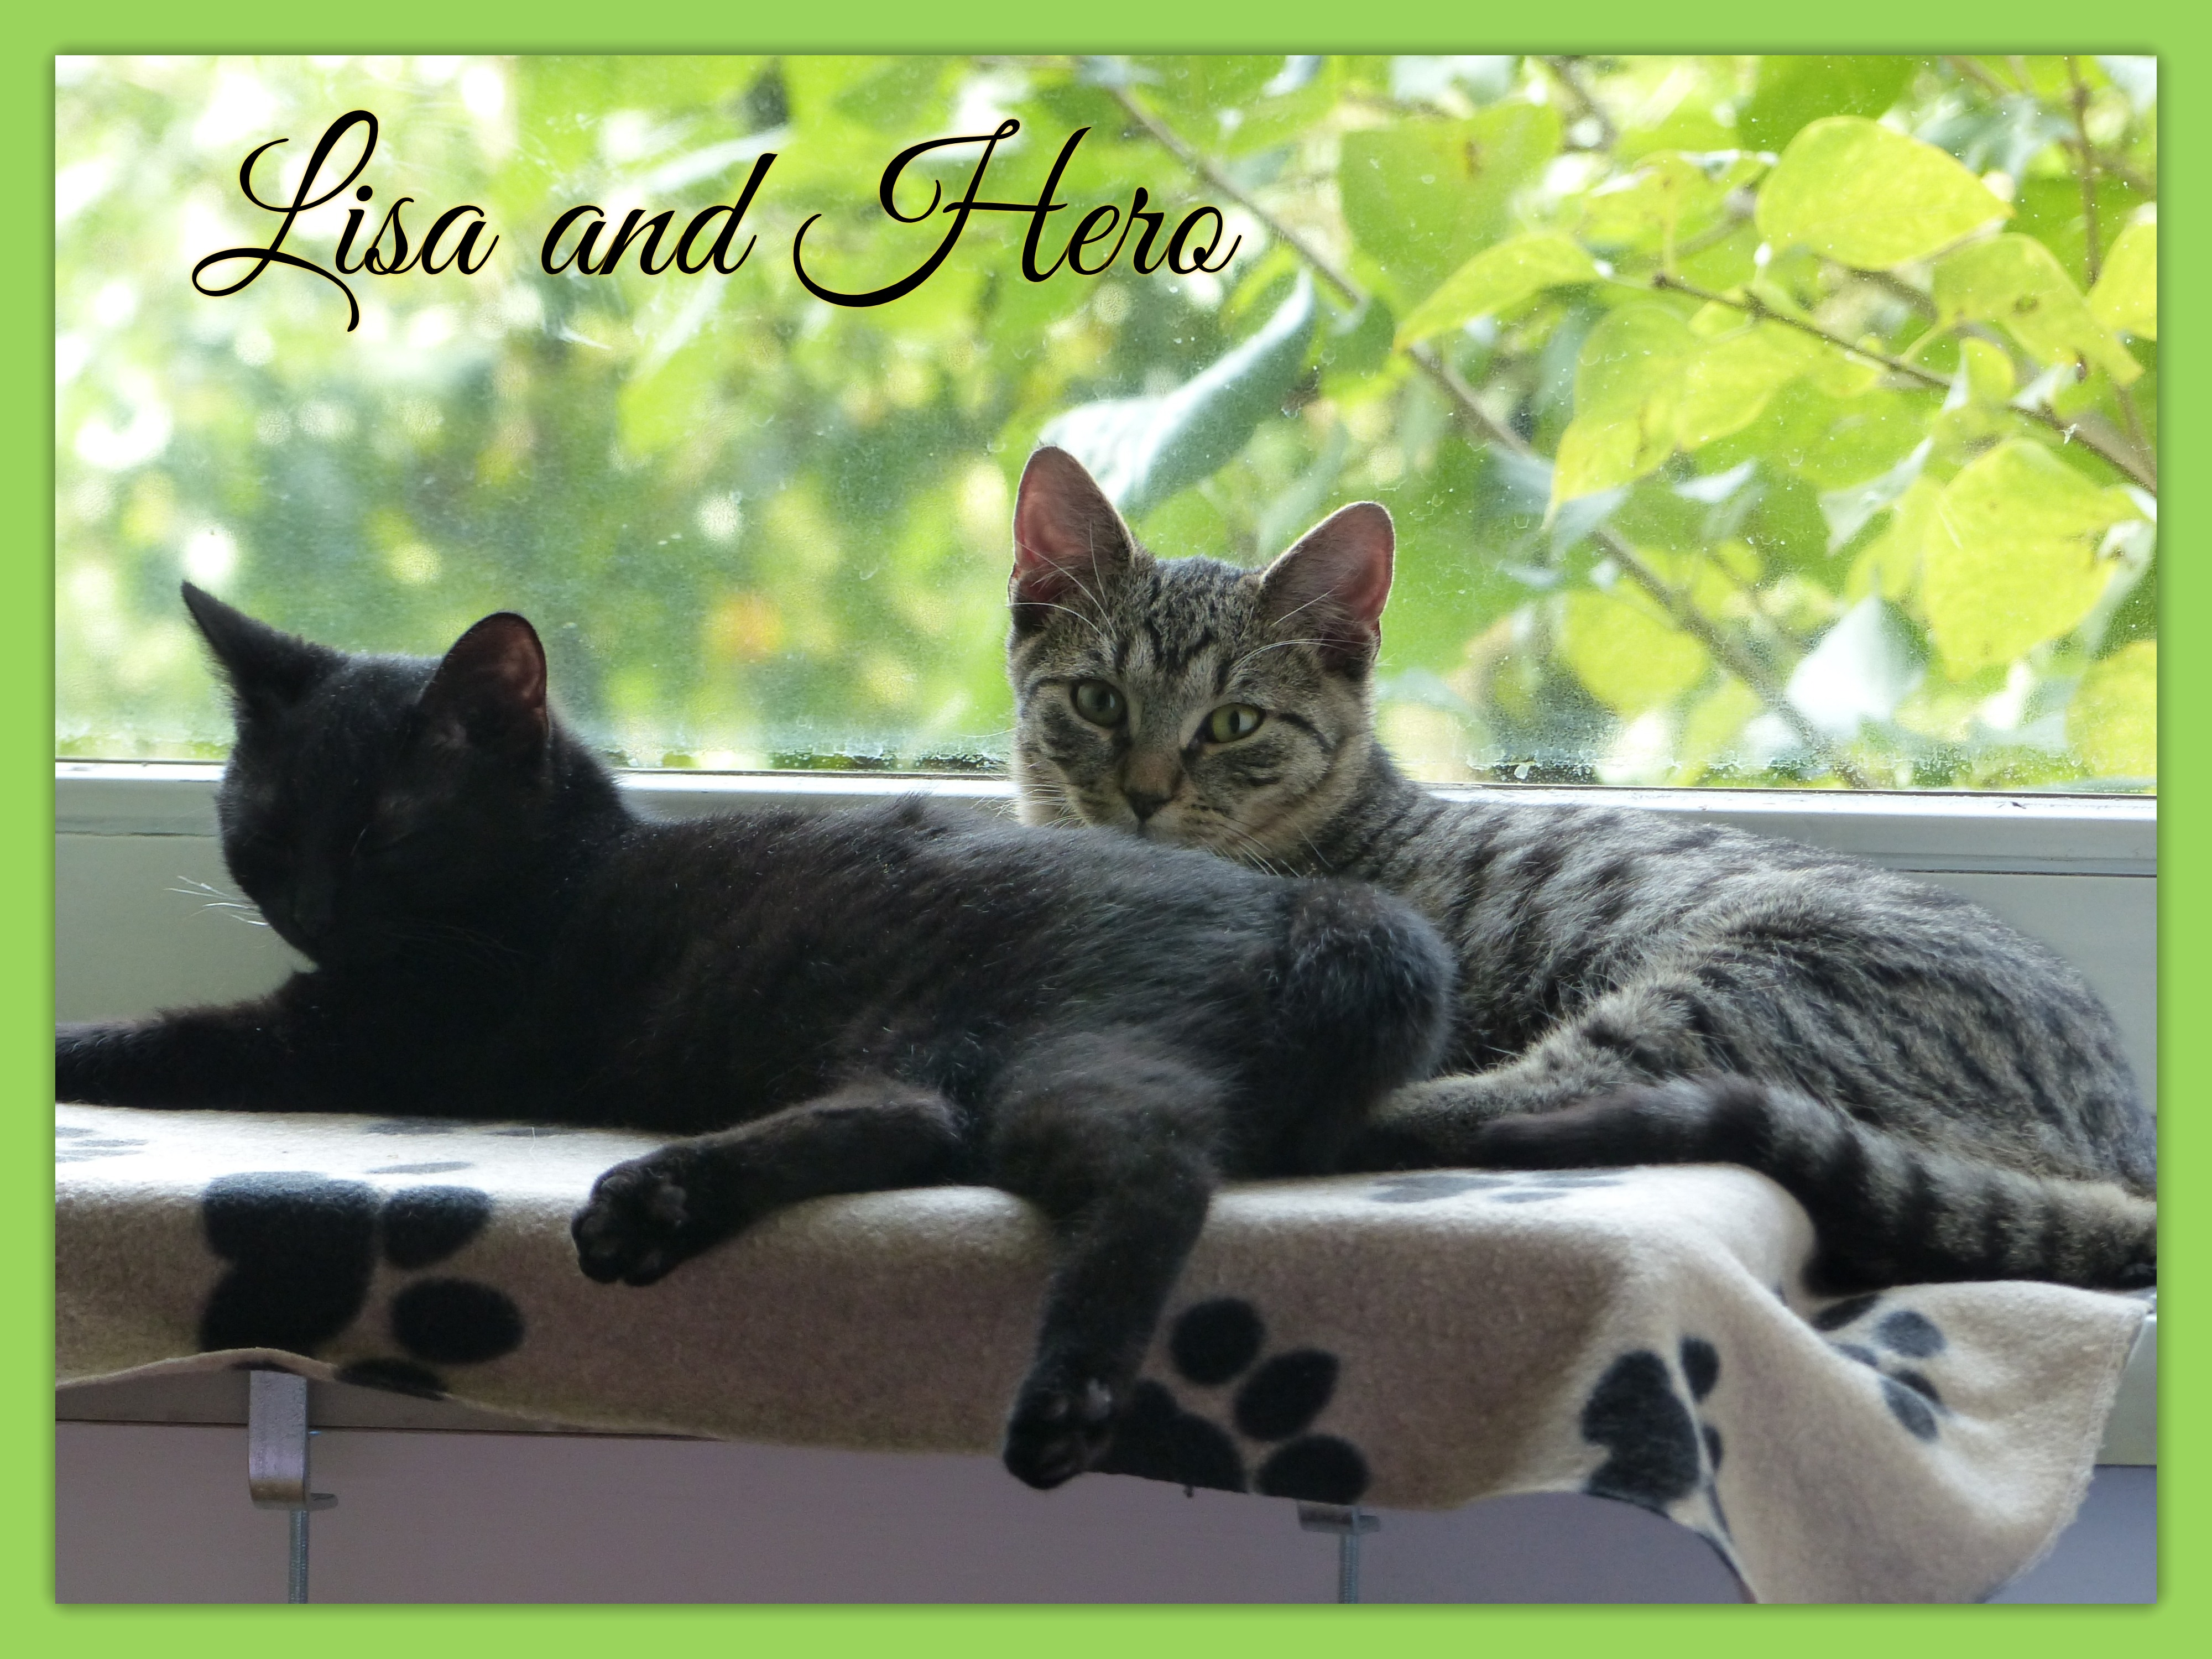 Lisa and Hero about Pic